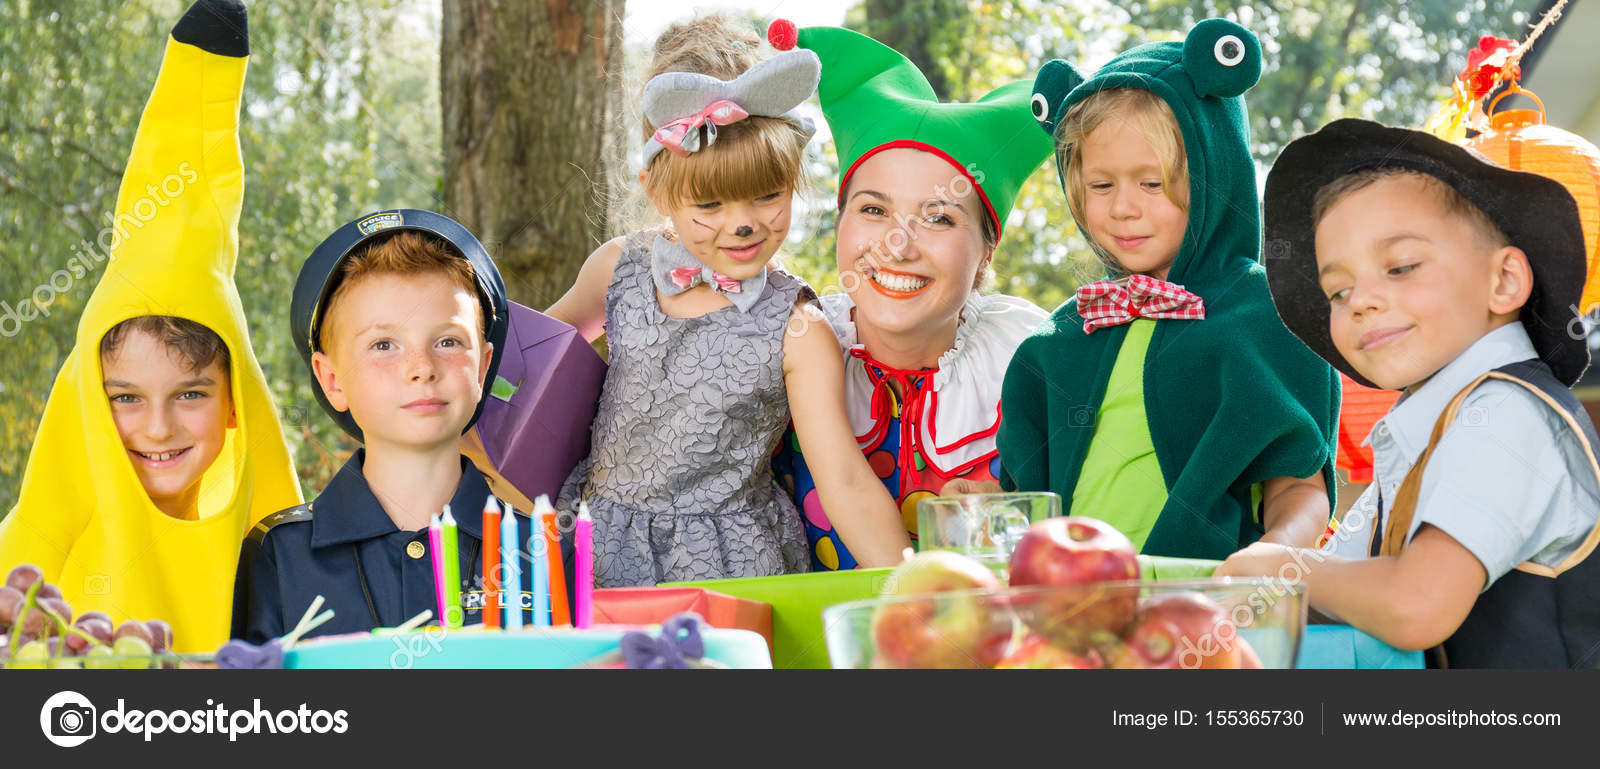 Kostüm-Party für Kinder — Stockfoto © photographee.eu #155365730